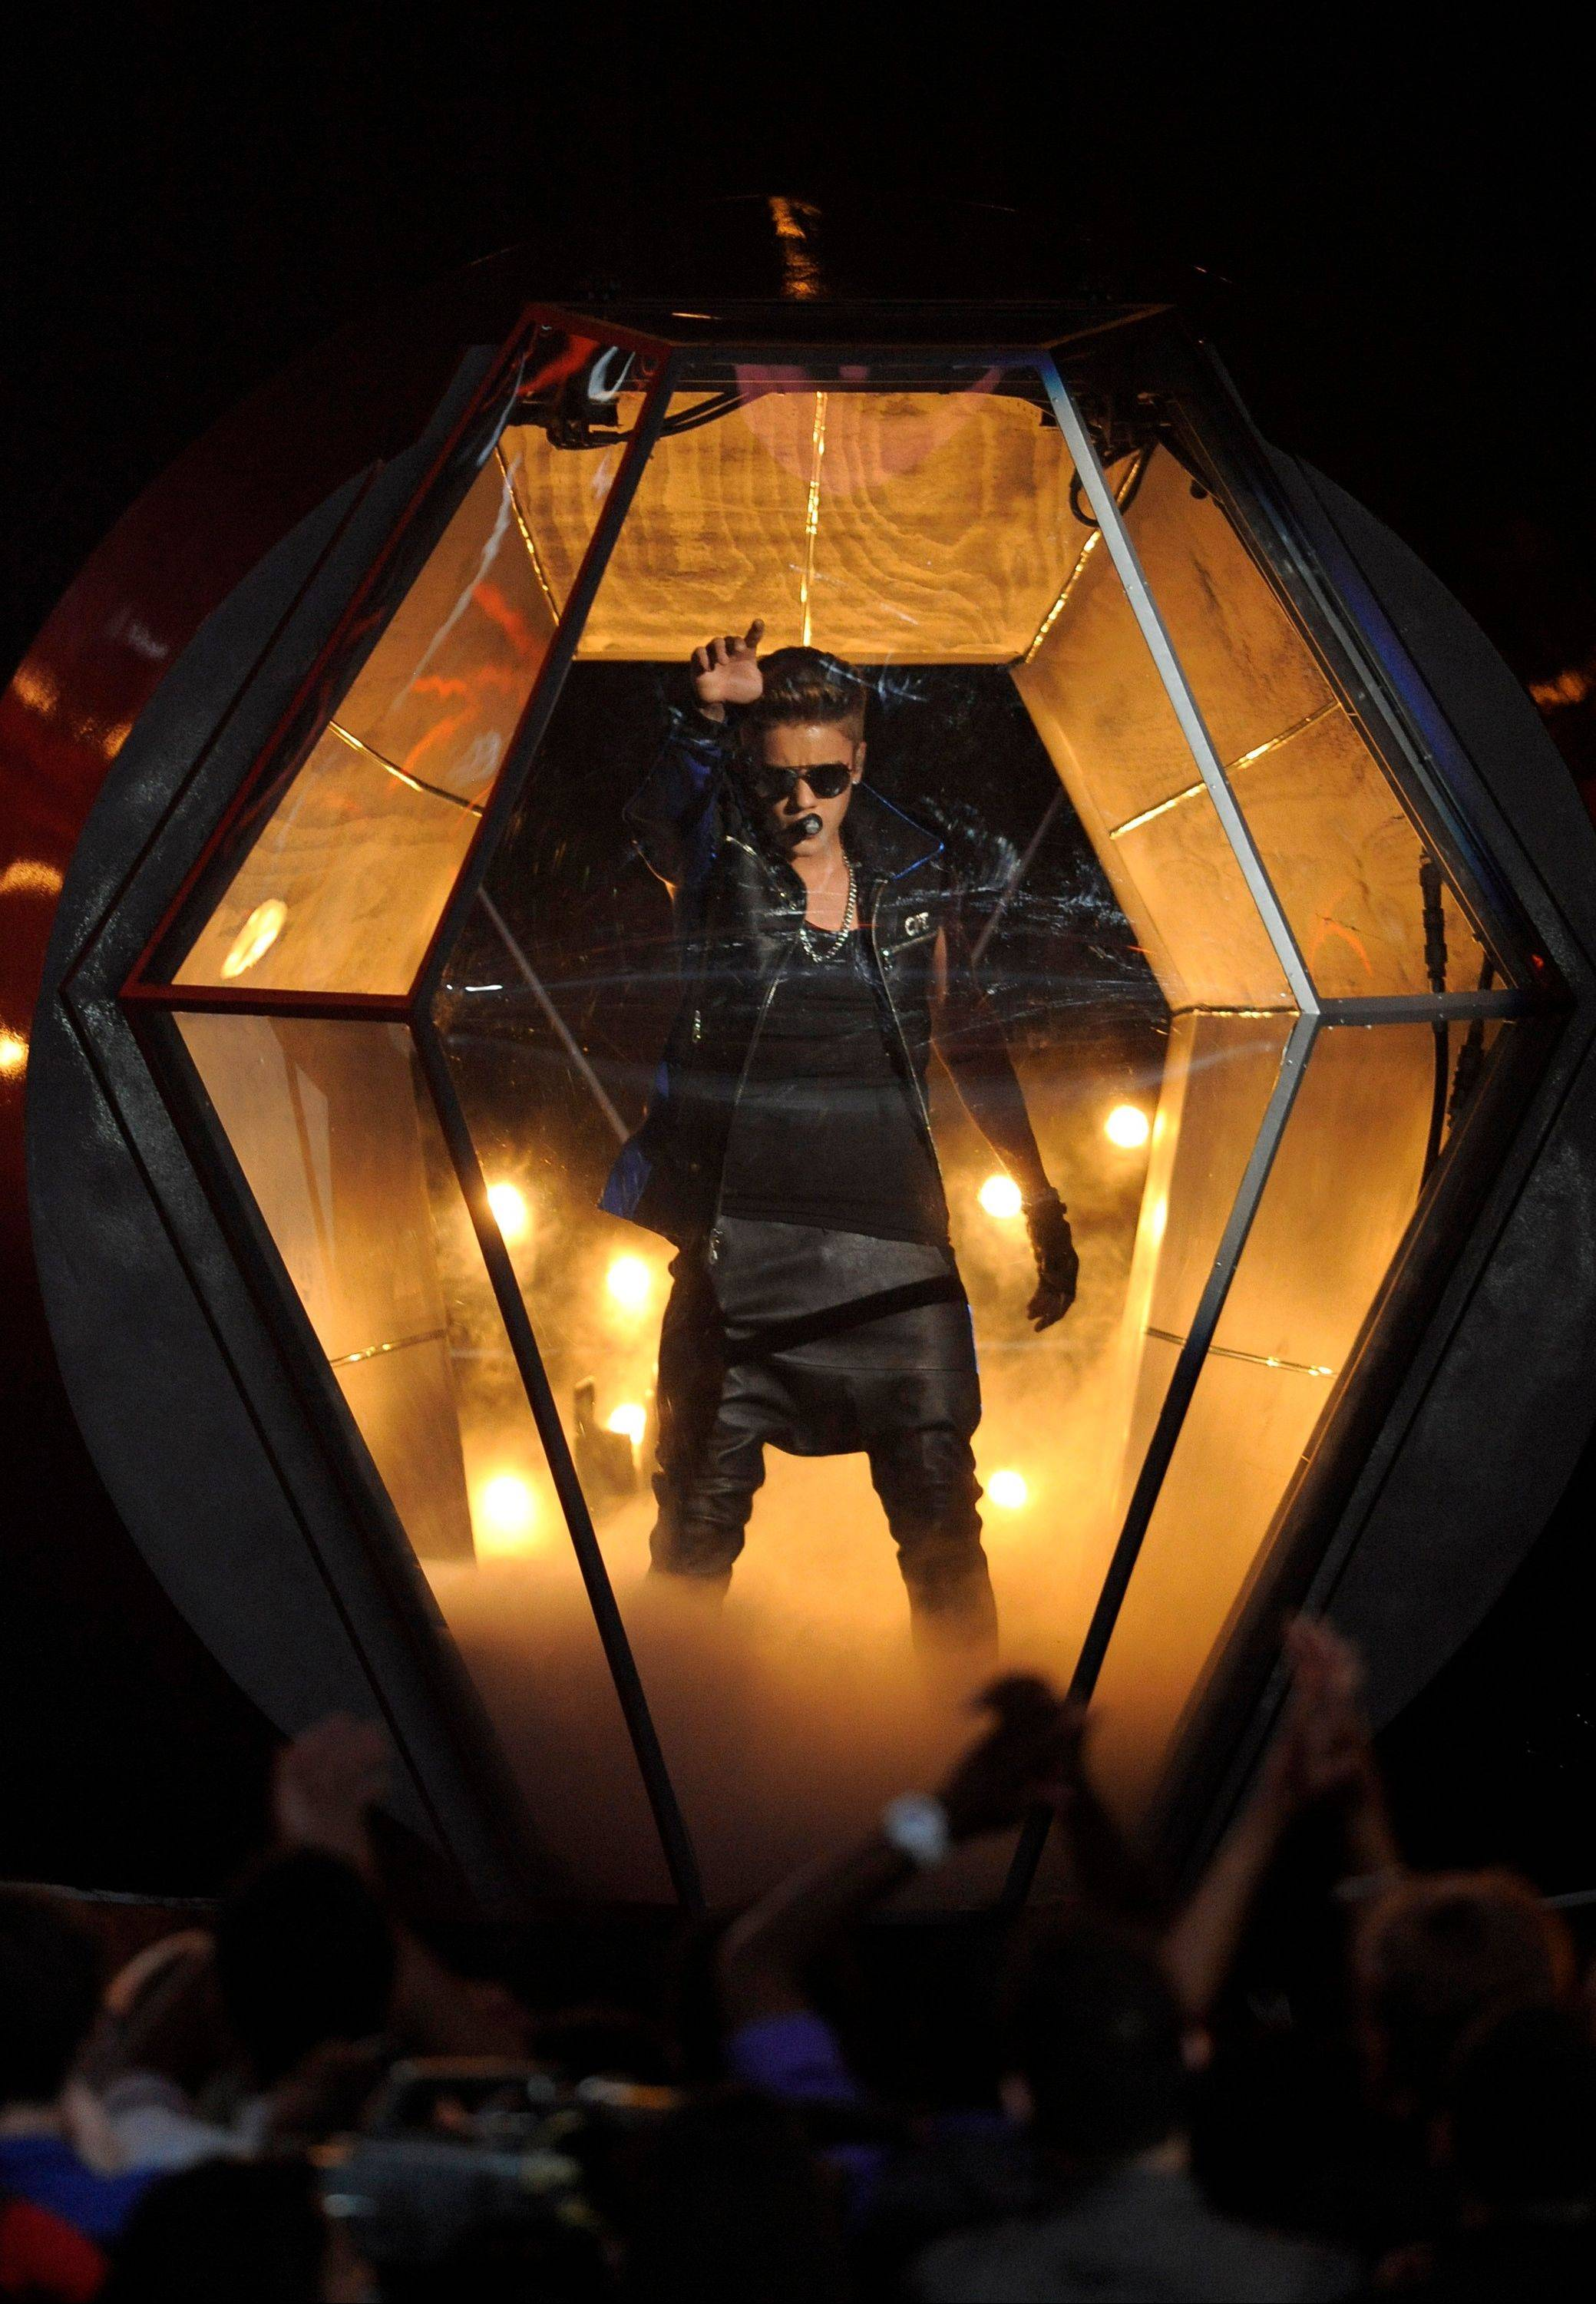 Justin Bieber performs at the Billboard Music Awards at the MGM Grand Garden Arena on Sunday, May 19, 2013 in Las Vegas.